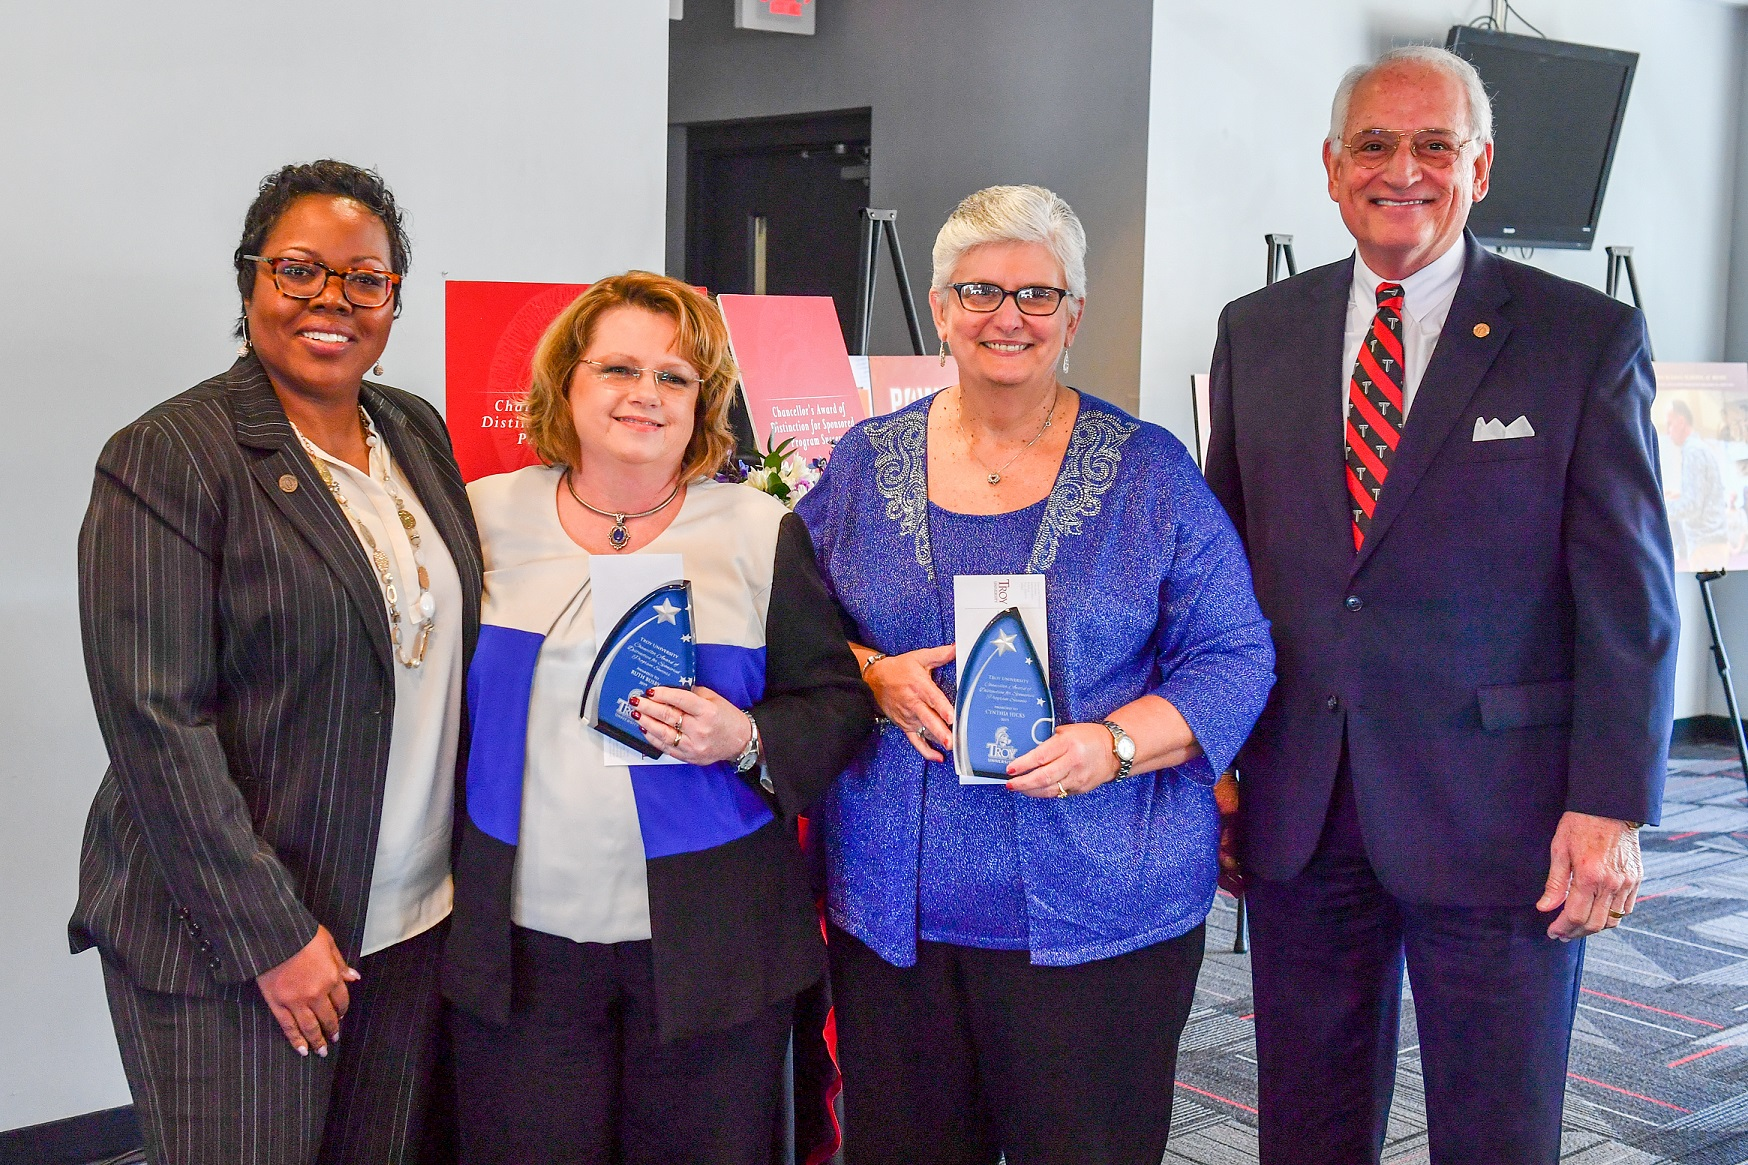 2019 Chancello's Award of Distinction Dr. Ruth Busby and Dr. Cynthia Hicks